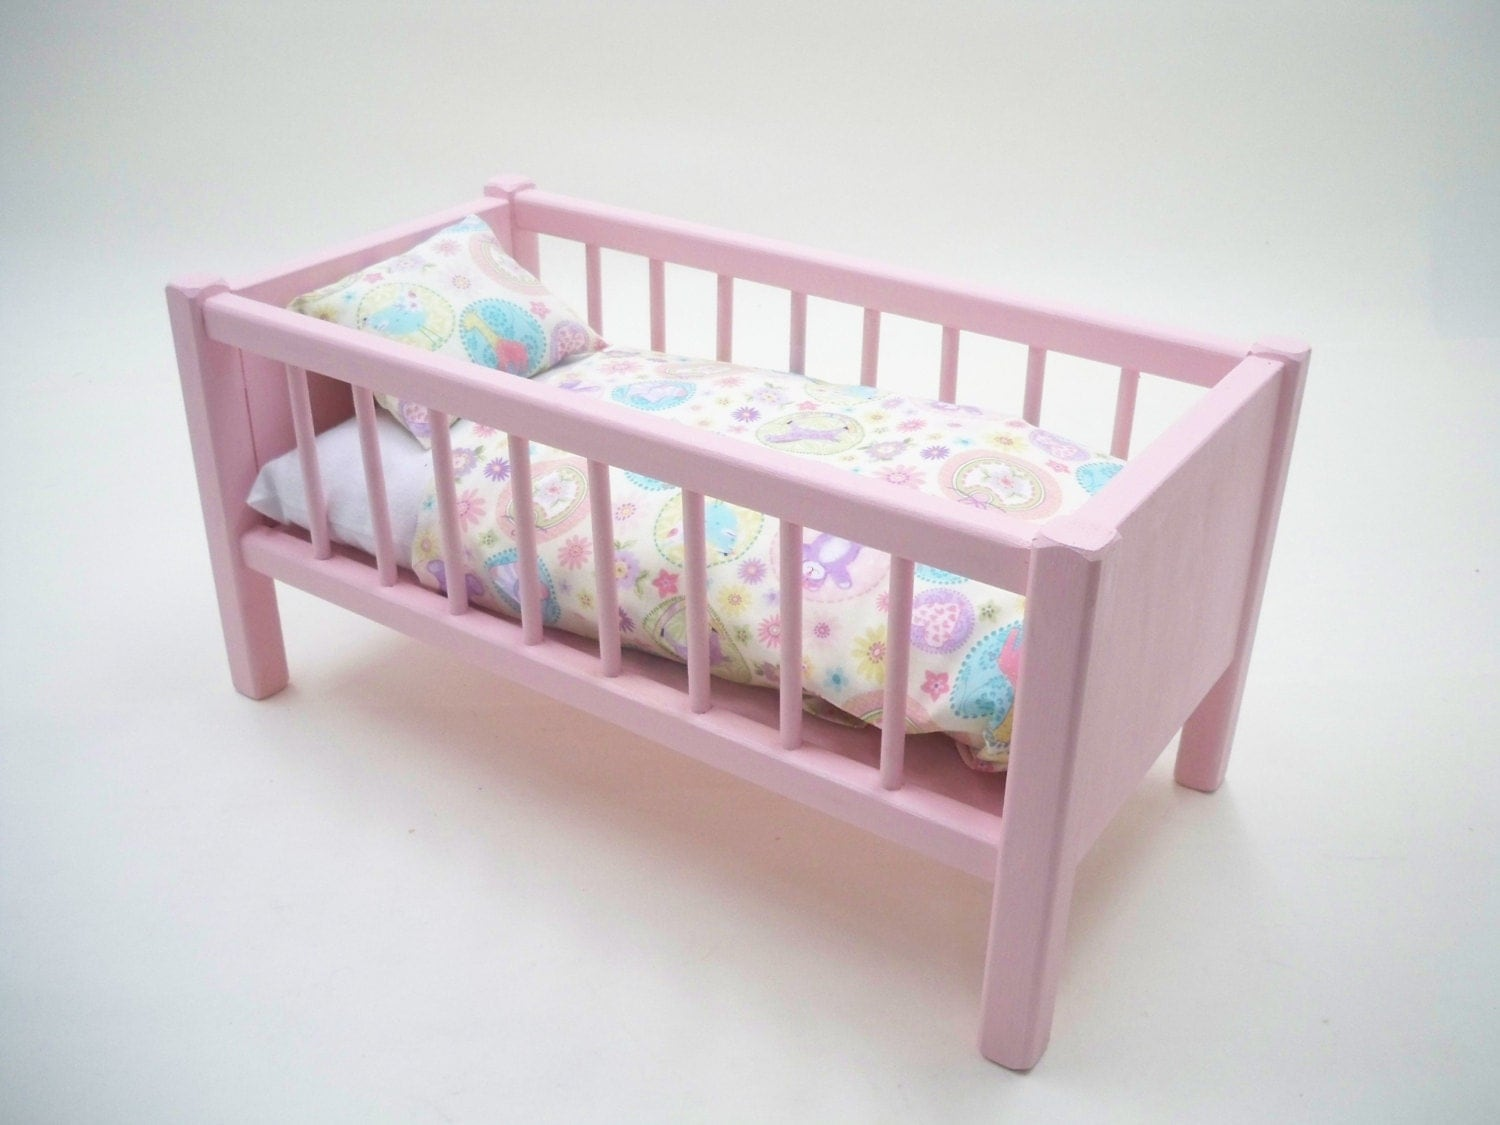 Baby bed in nigeria - Wood Doll Bed Doll Bed American Doll Bed Doll Crib Girls Toy 18inch Doll Bed Baby Doll Crib Baby Doll Bed